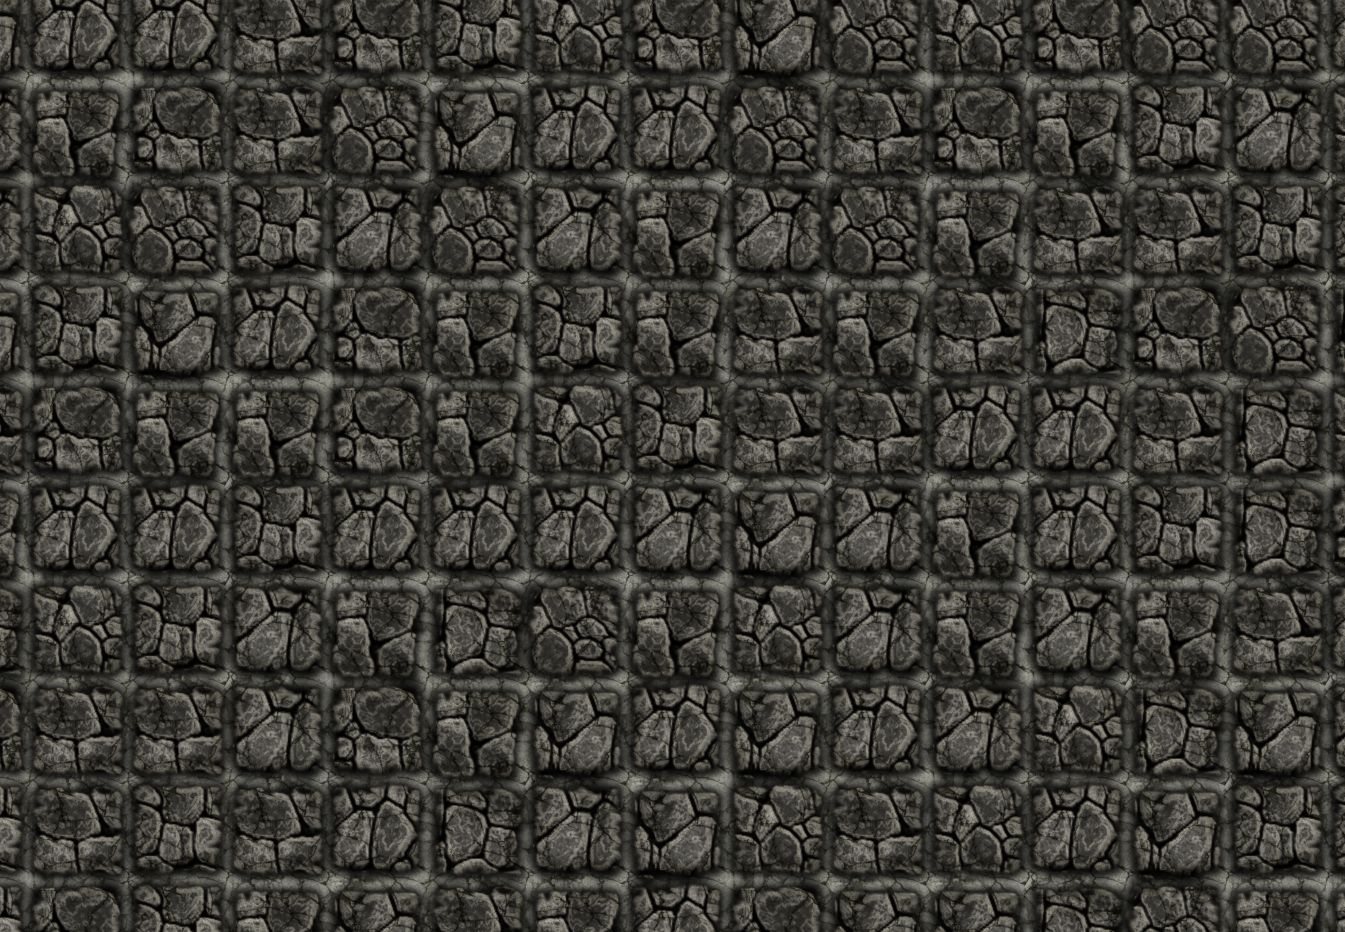 Drawn rock rock wall Effects/structures a wall sample drawn